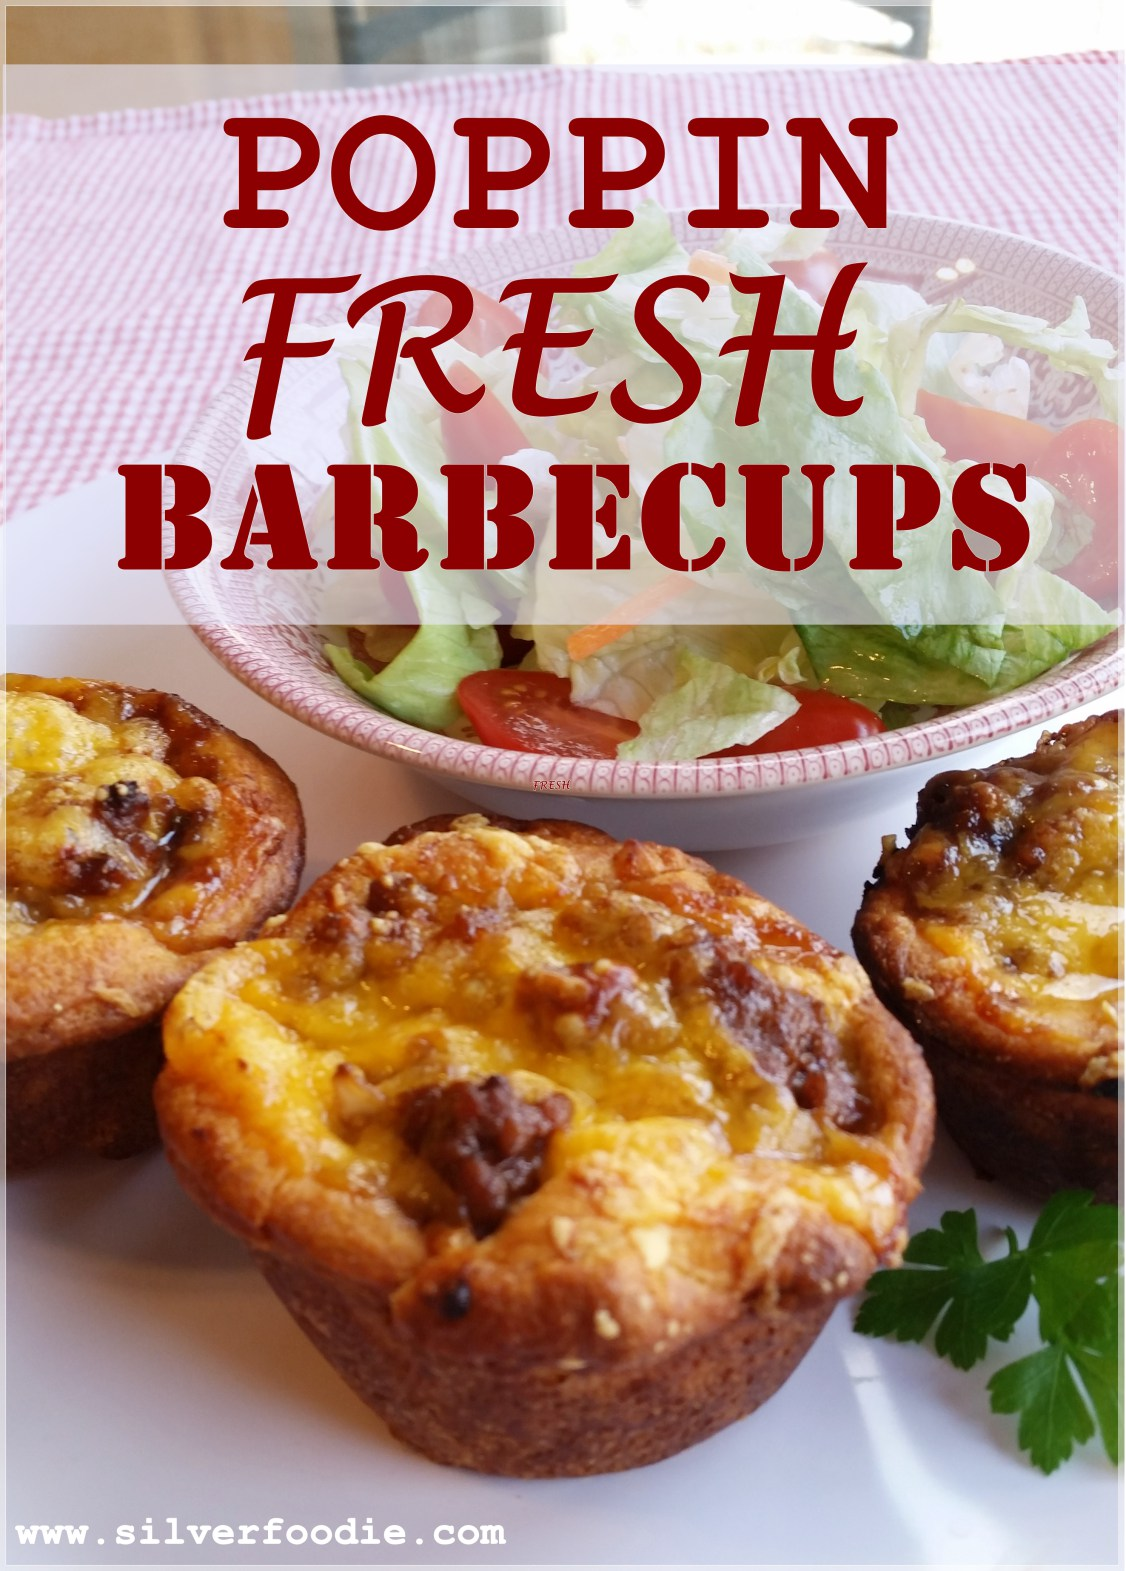 poppin-fresh-barbecups-vertical.jpg